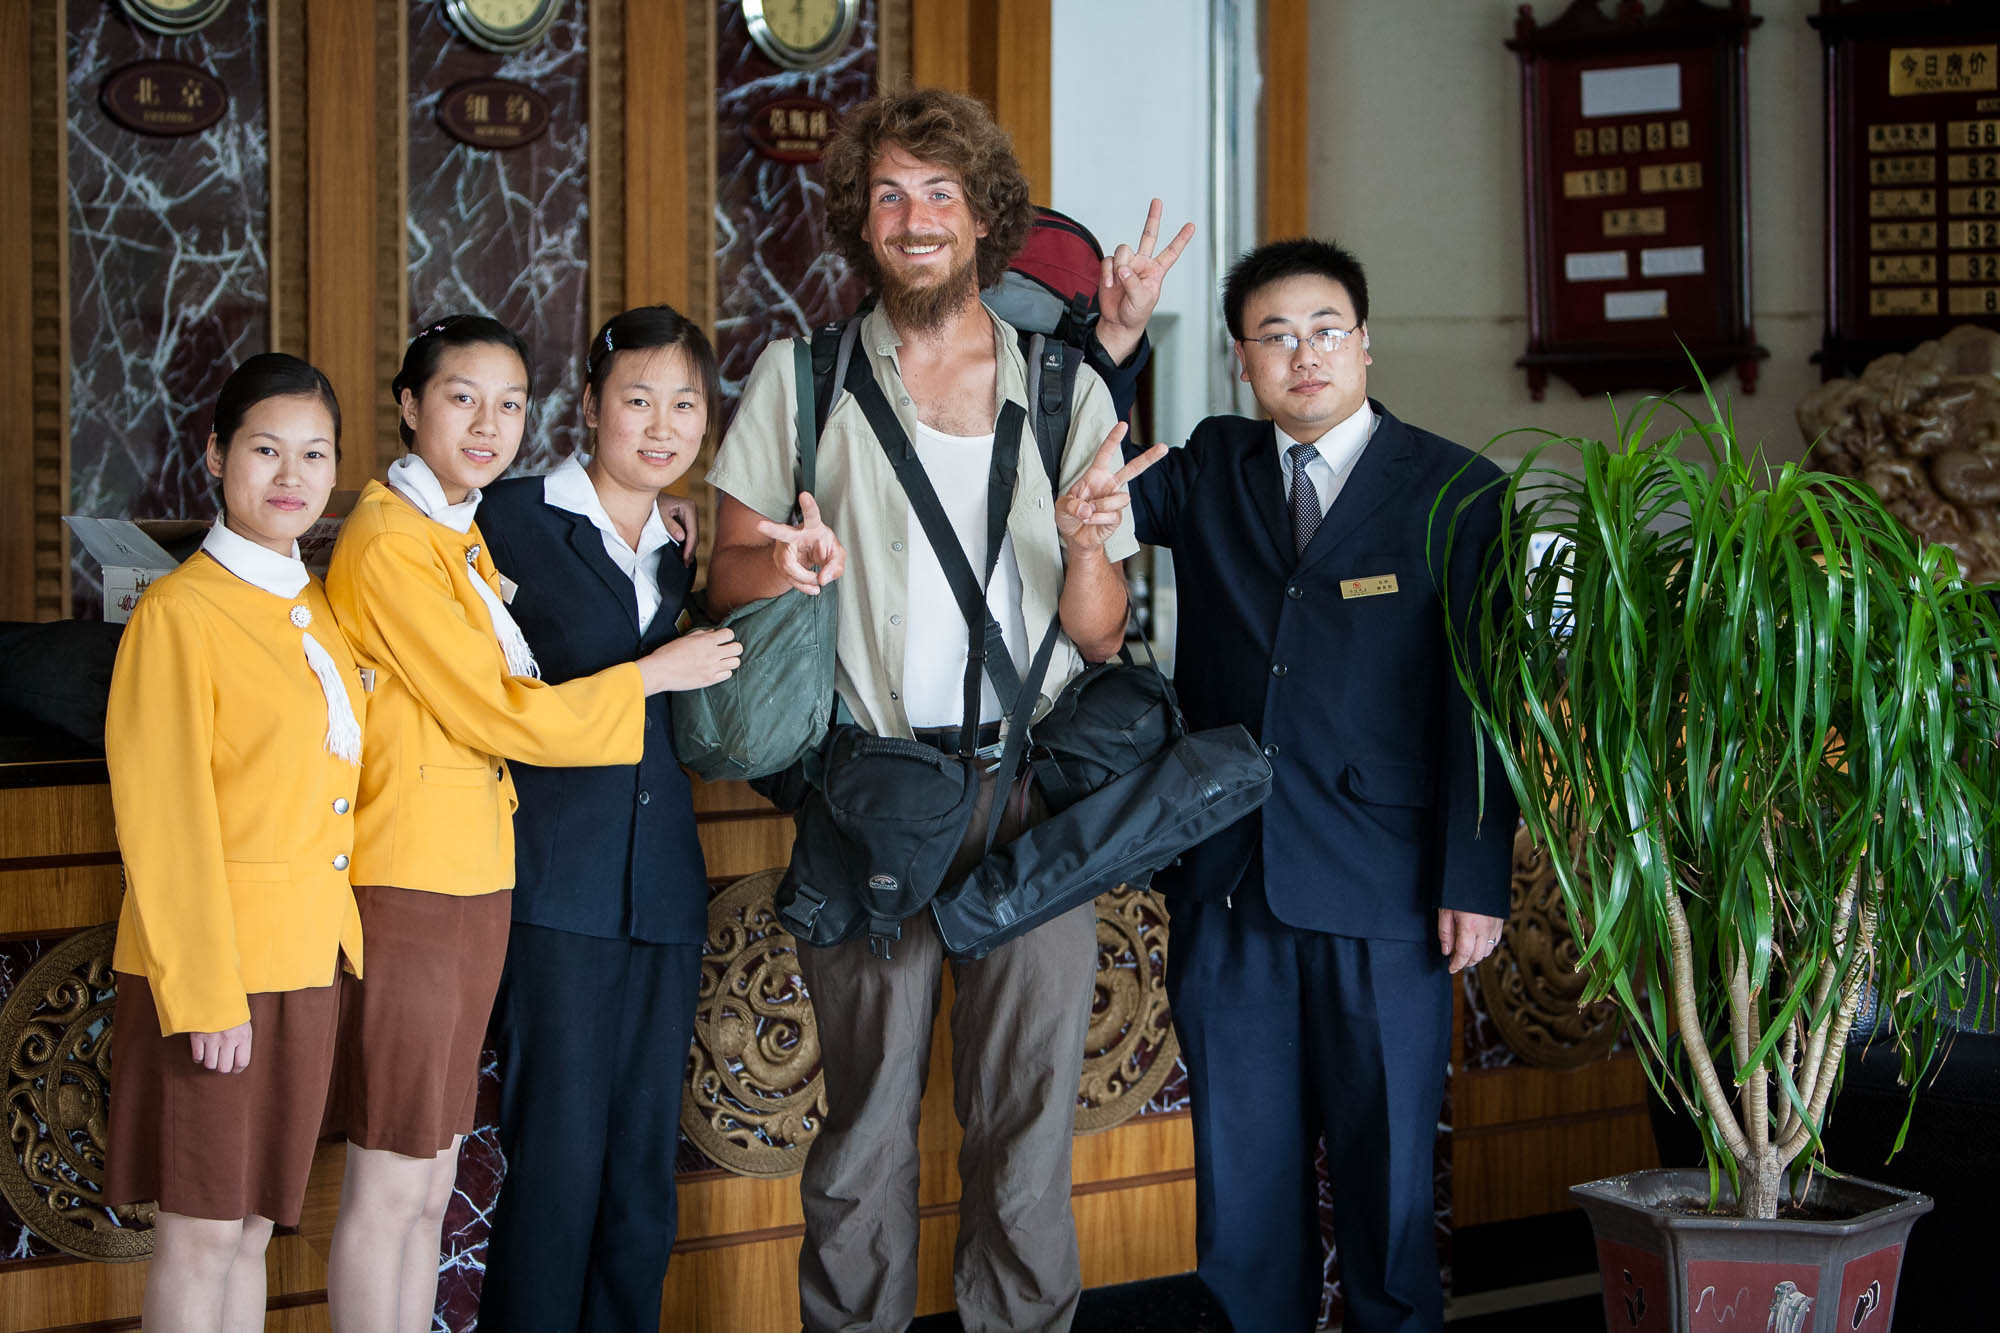 The staff of the Xiyou Hotel in Shanshan was very friendly and welcoming